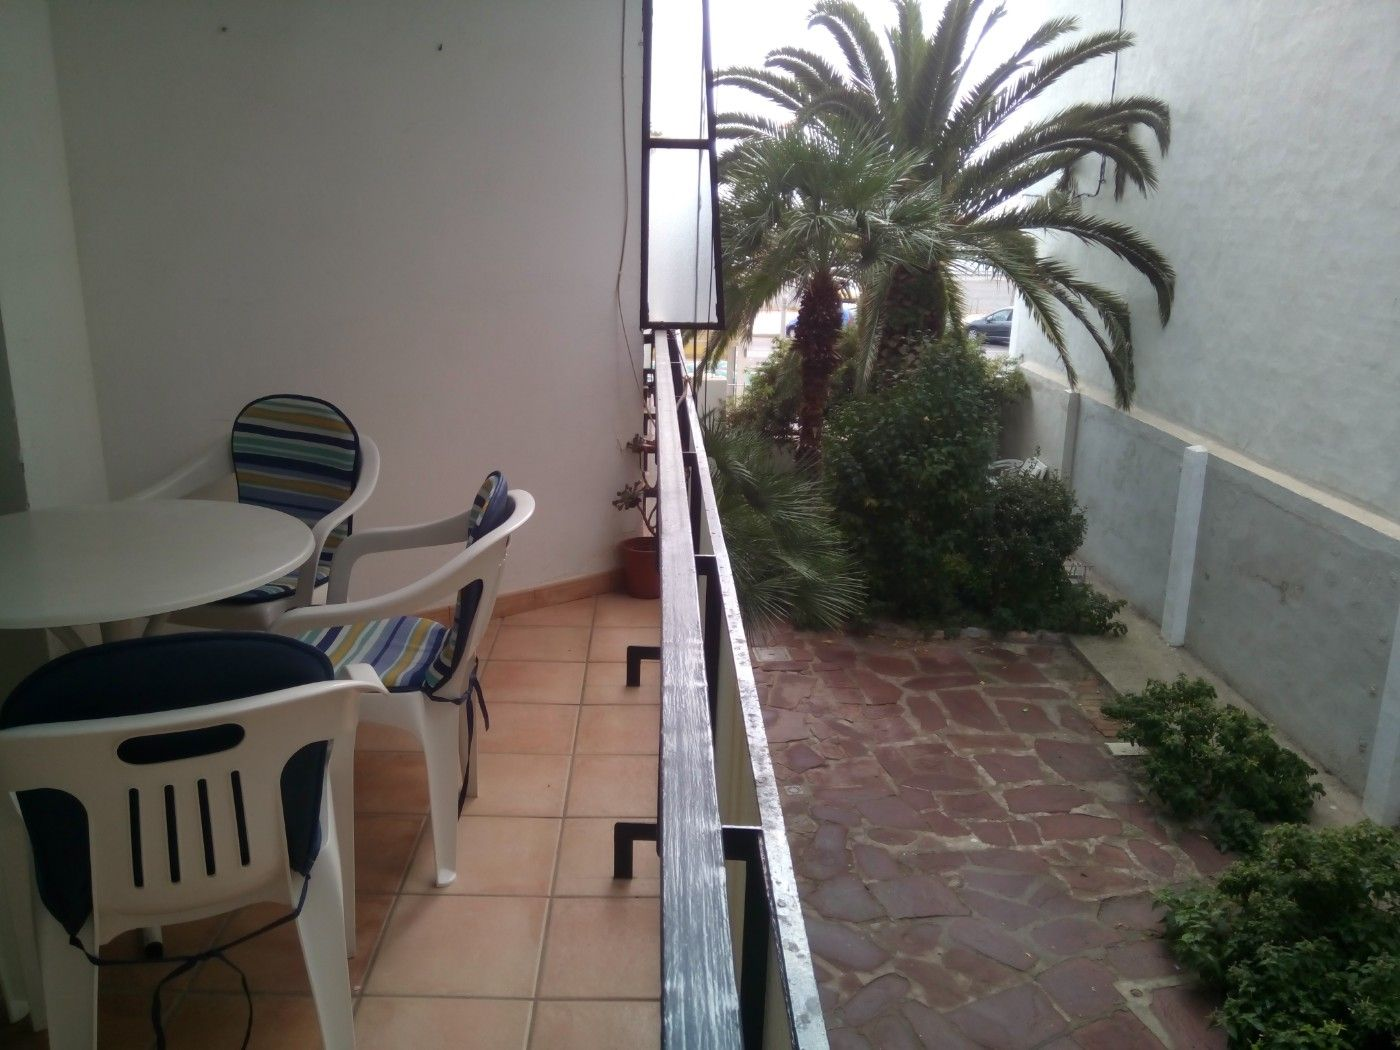 Appartement in Avenida mediterrania, 20. Junto al club nautico .